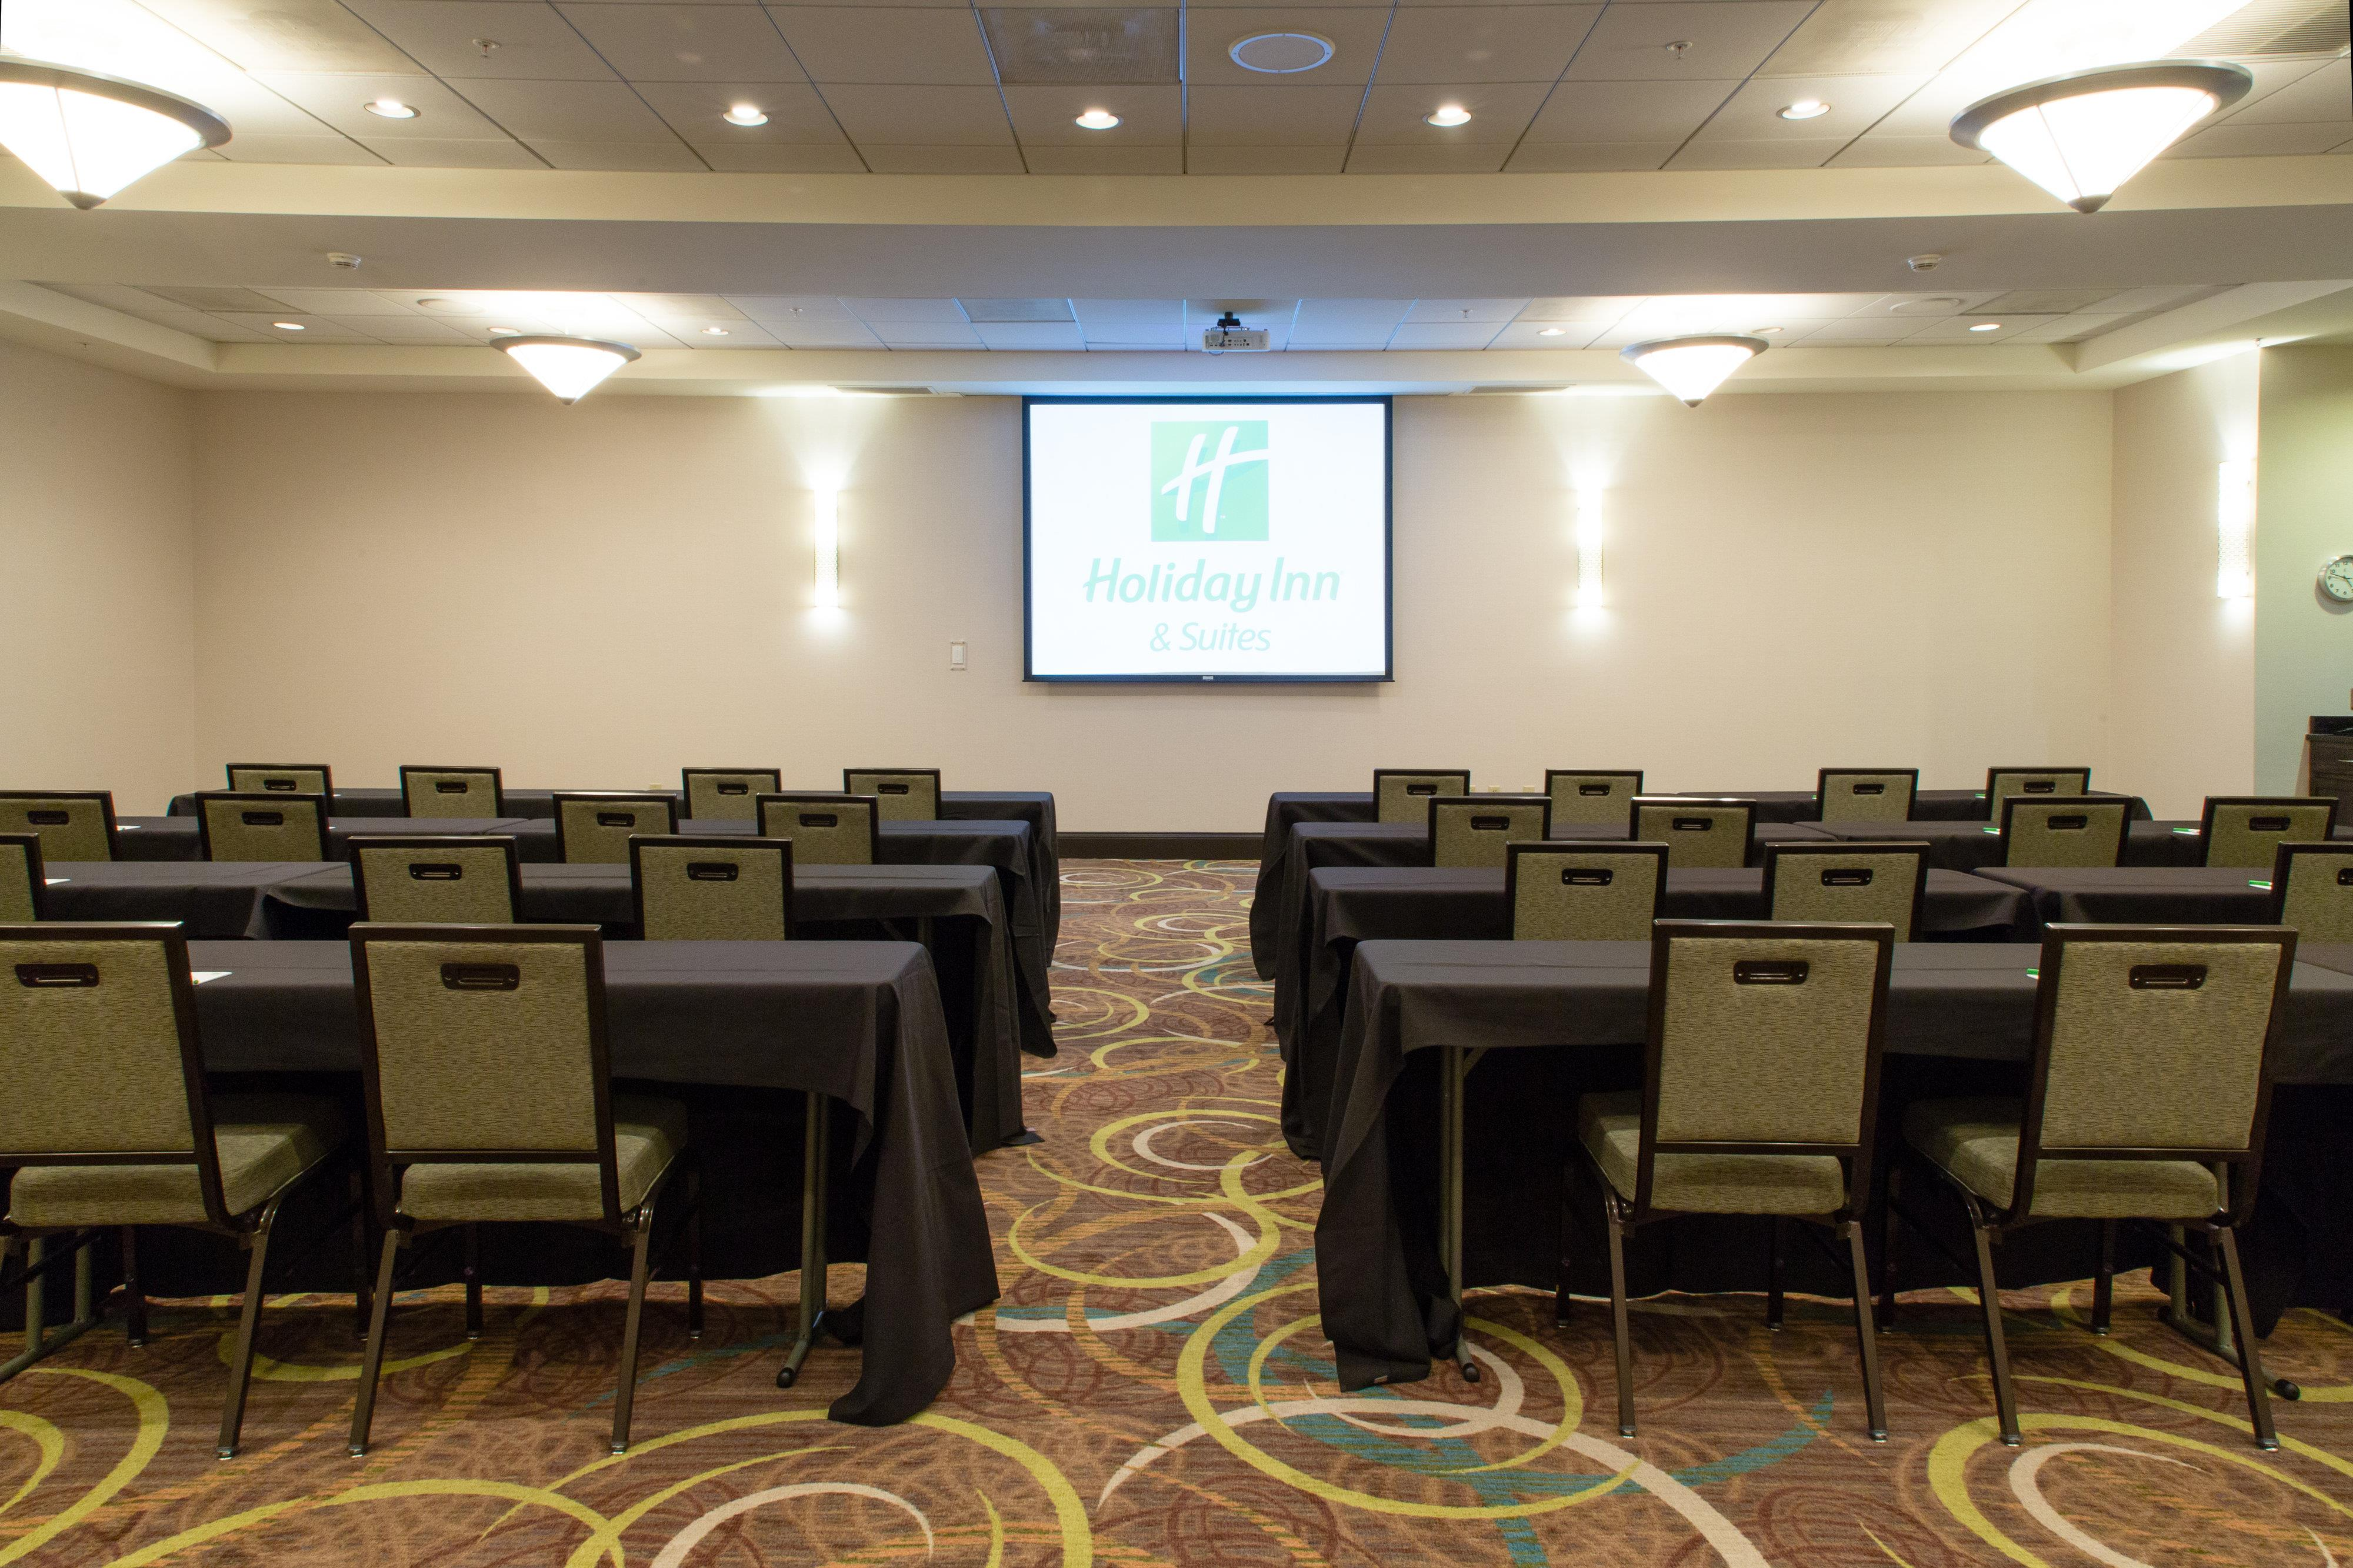 Holiday Inn & Suites - Rachel Crothers Conference Room